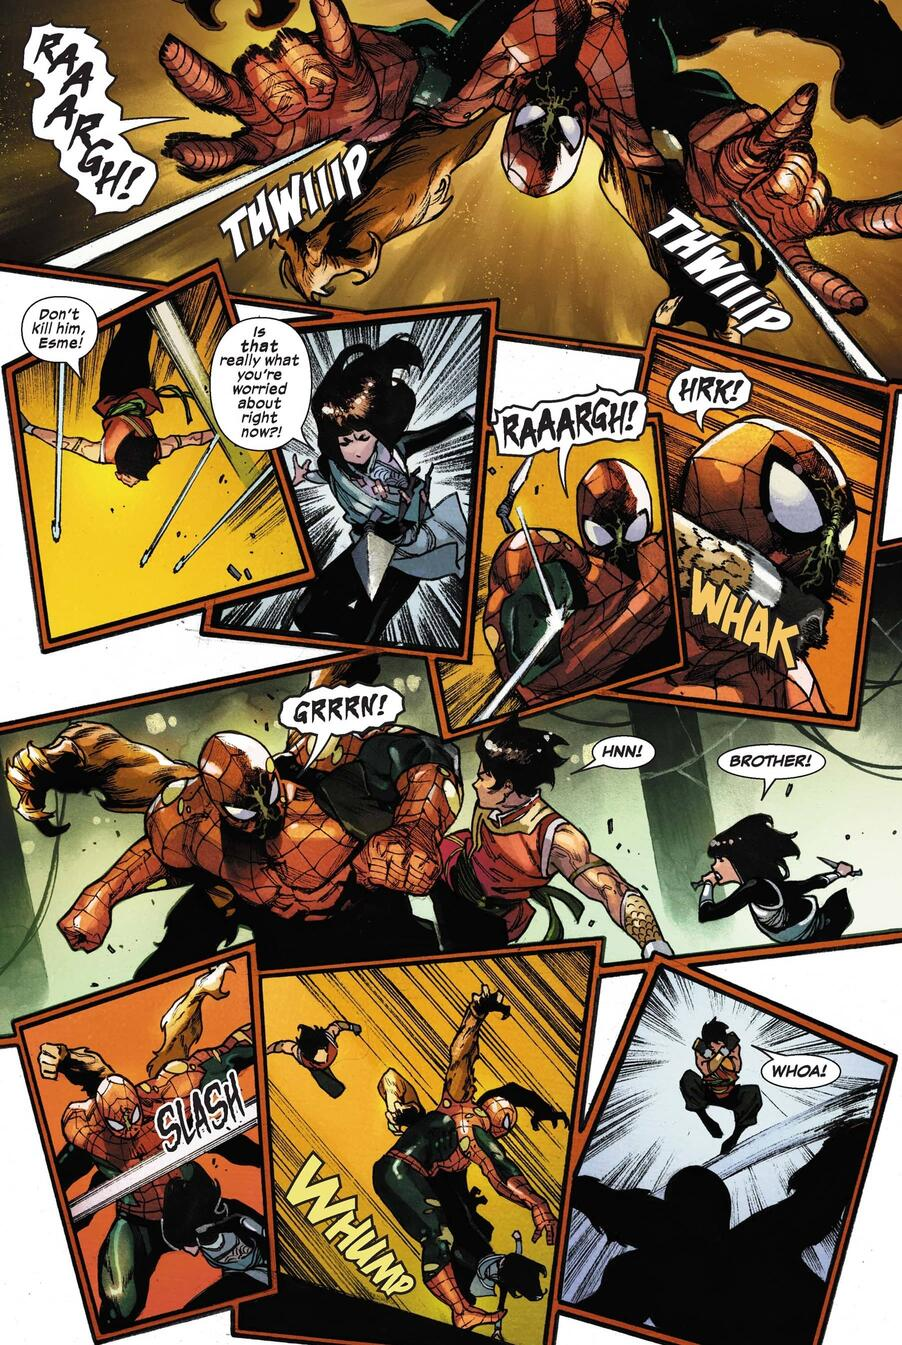 Spider-Monster flies into attack mode against Shang-Chi and Deadly Dagger.